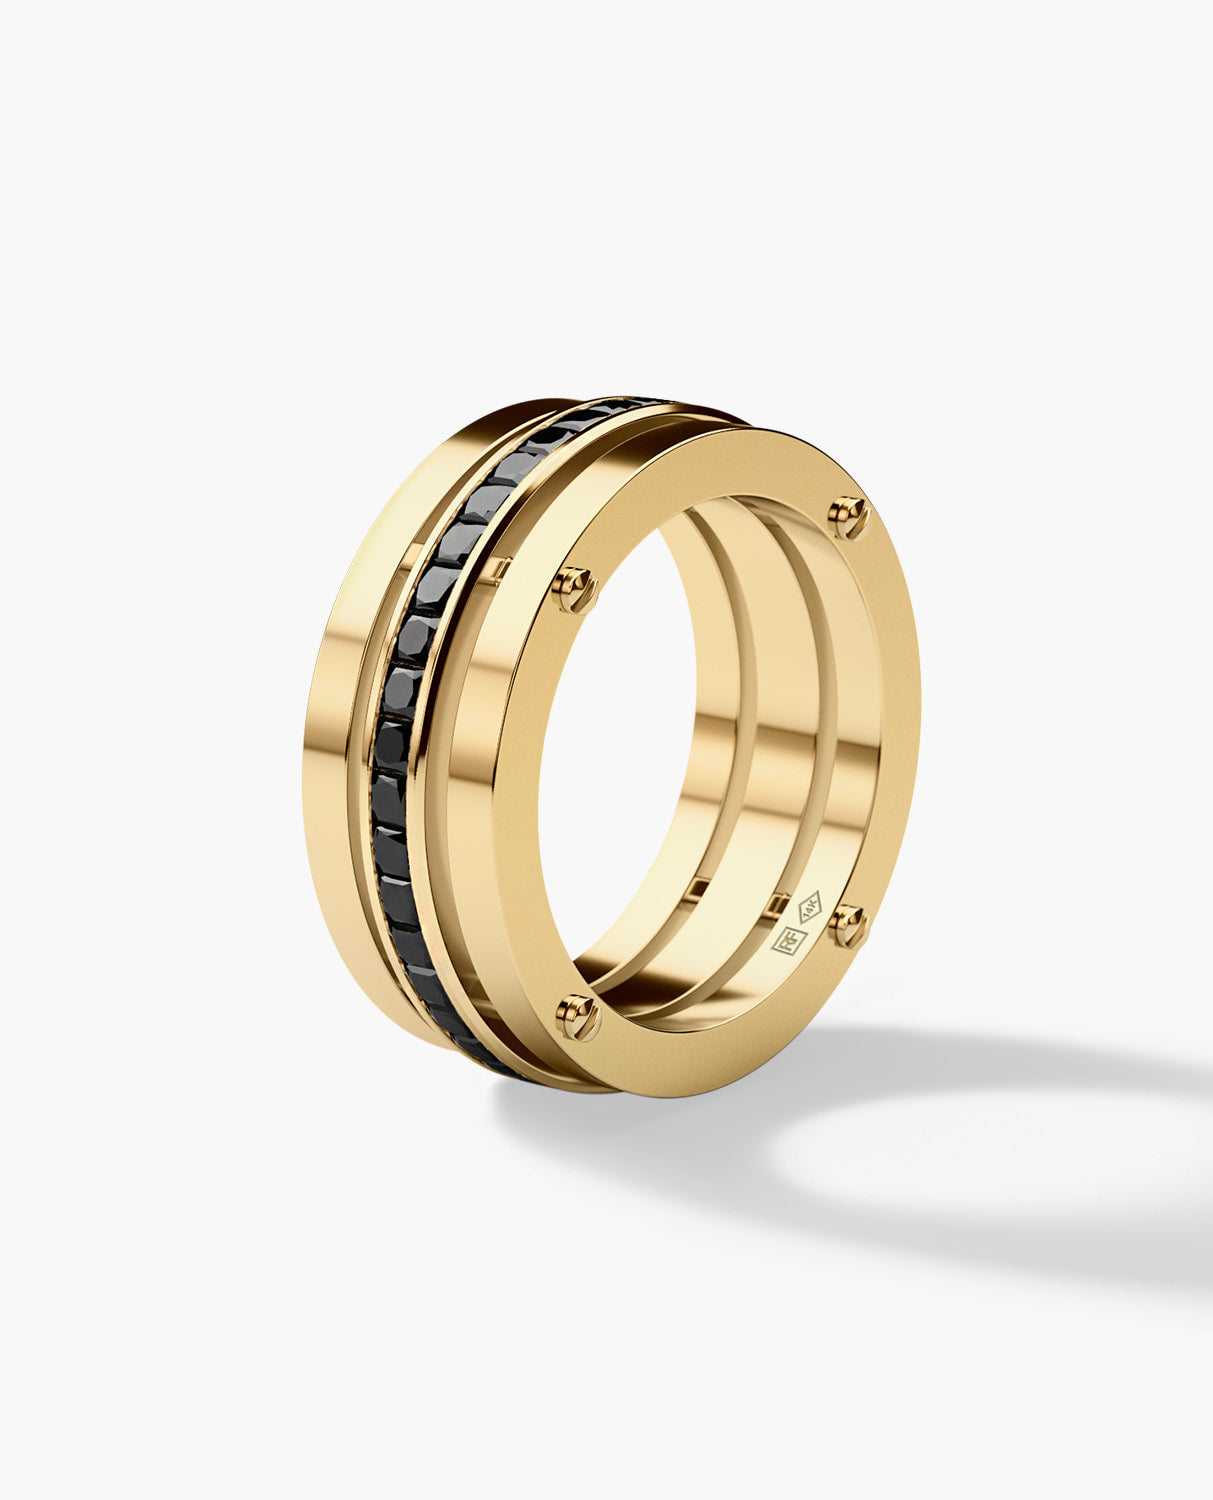 BREWER Mens Gold Wedding Band with Black Diamonds